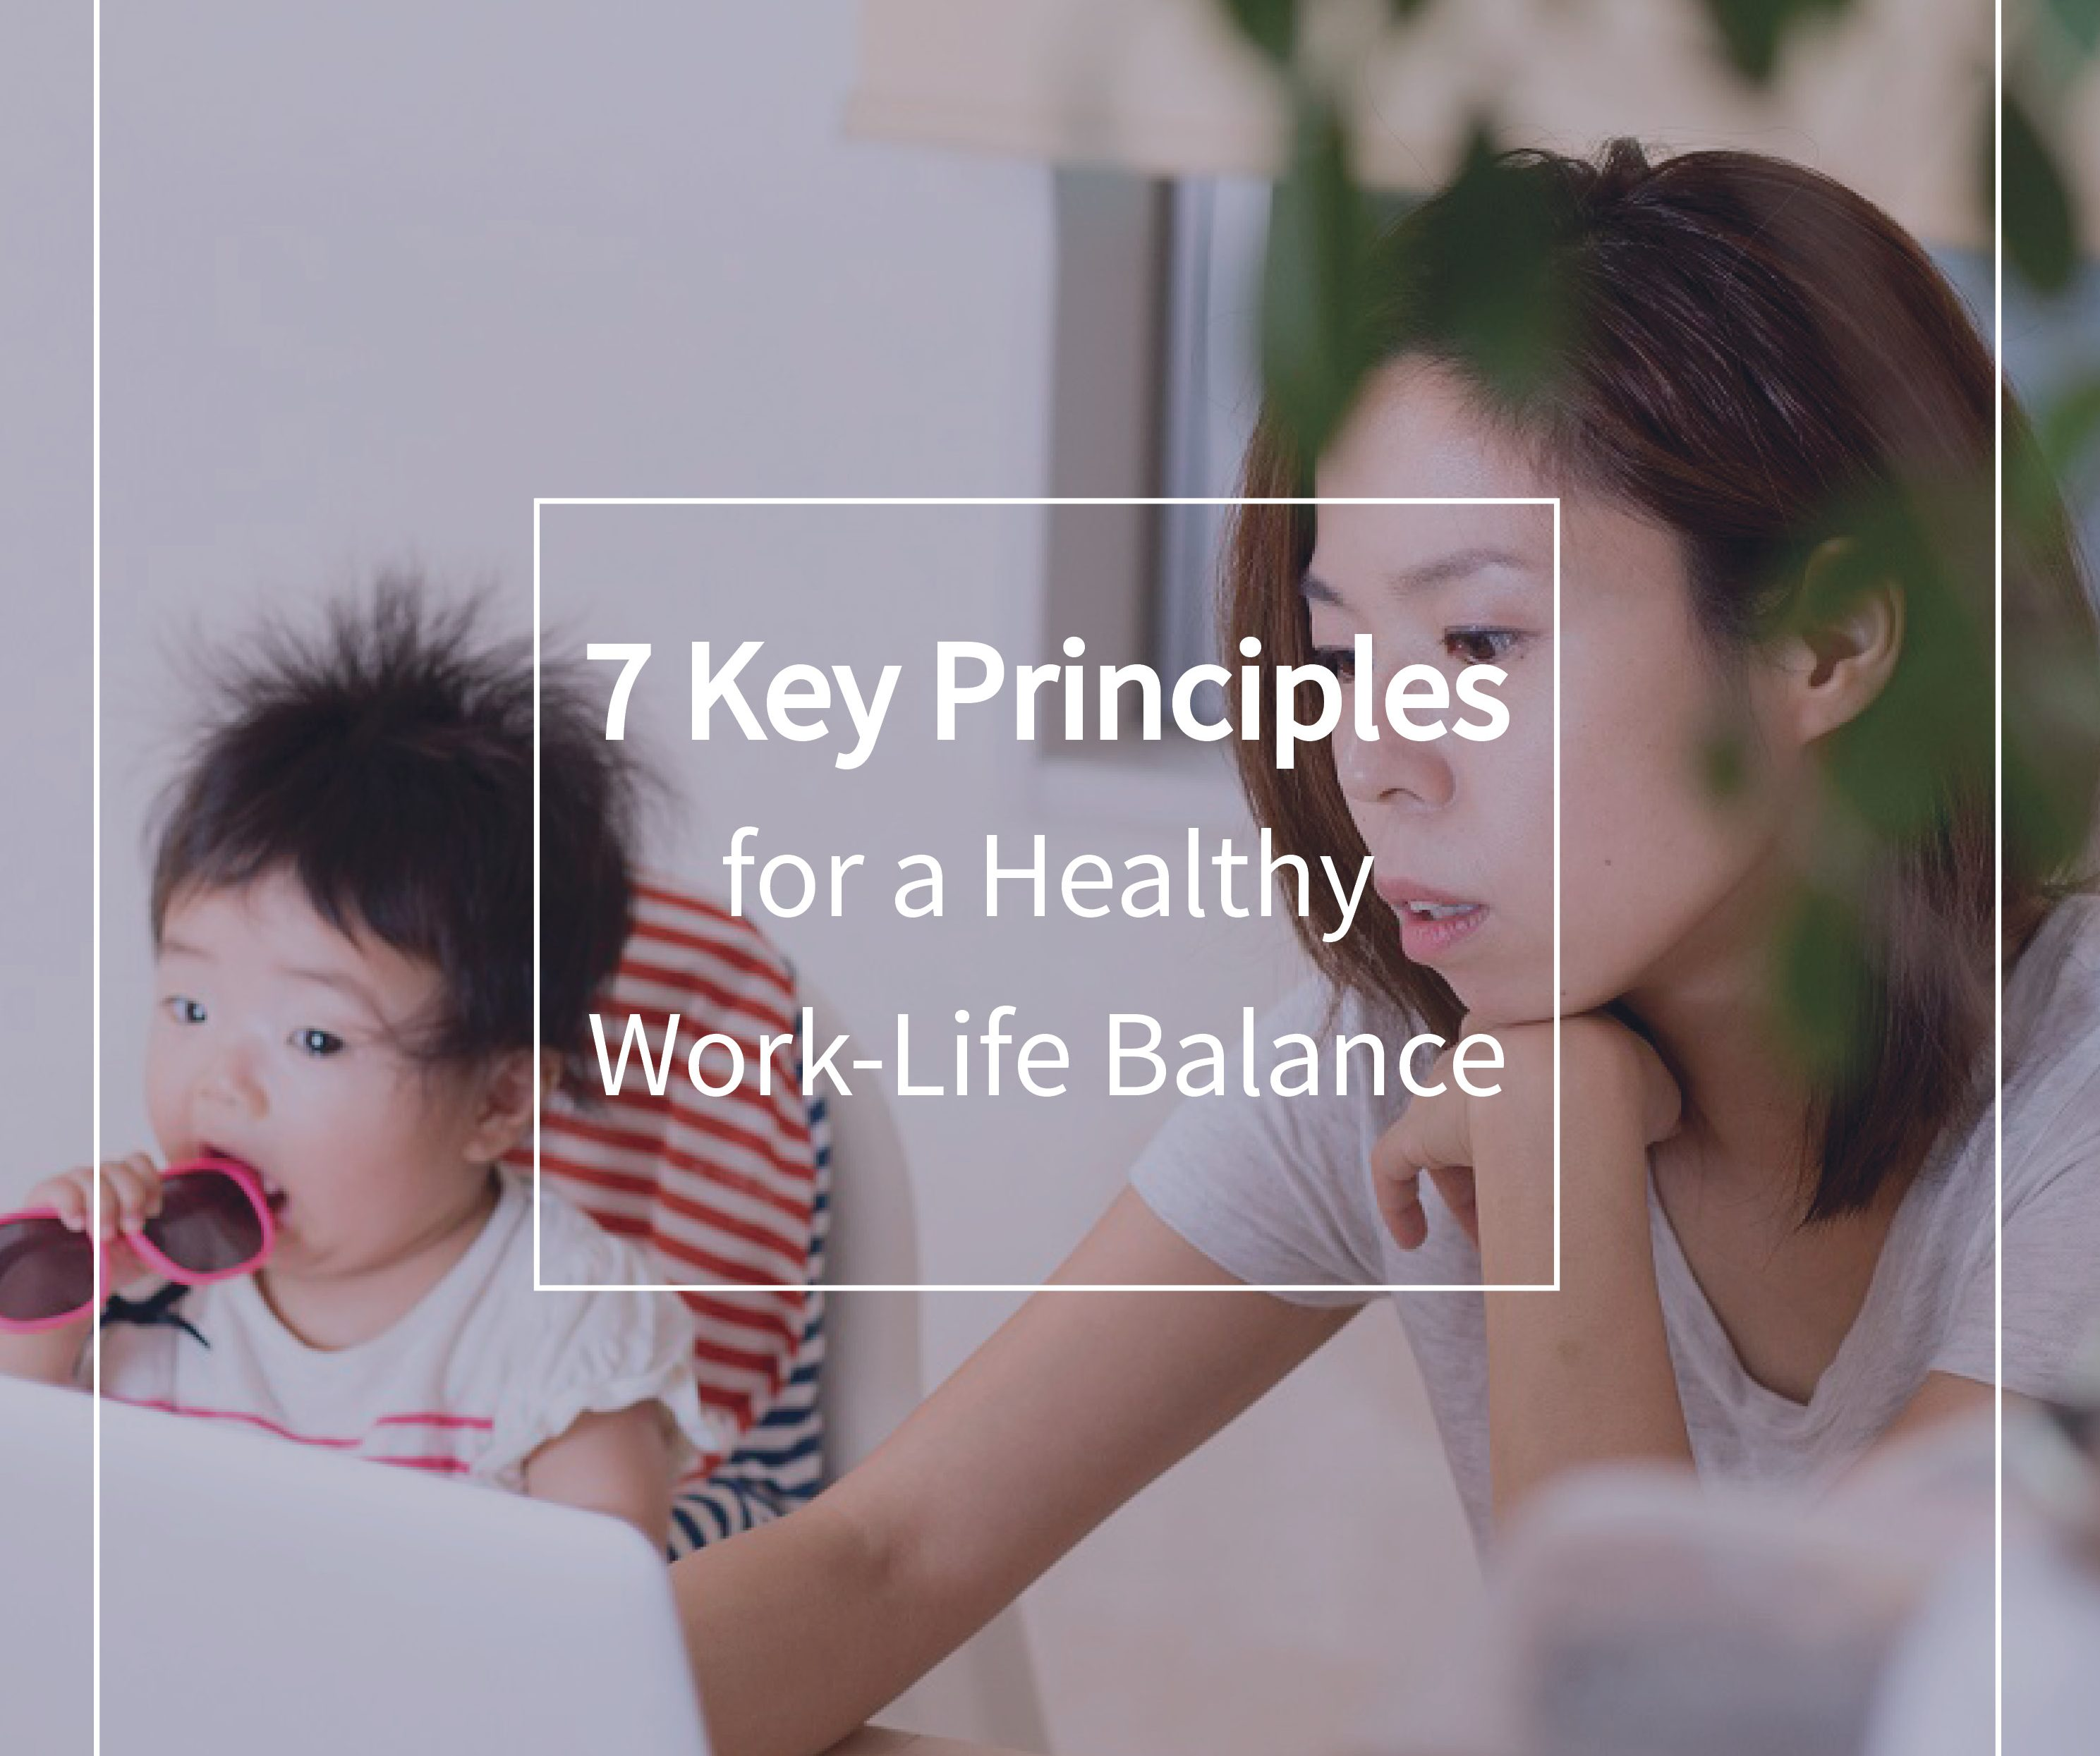 Seven Key Principles for a Healthy Work-Life Balance